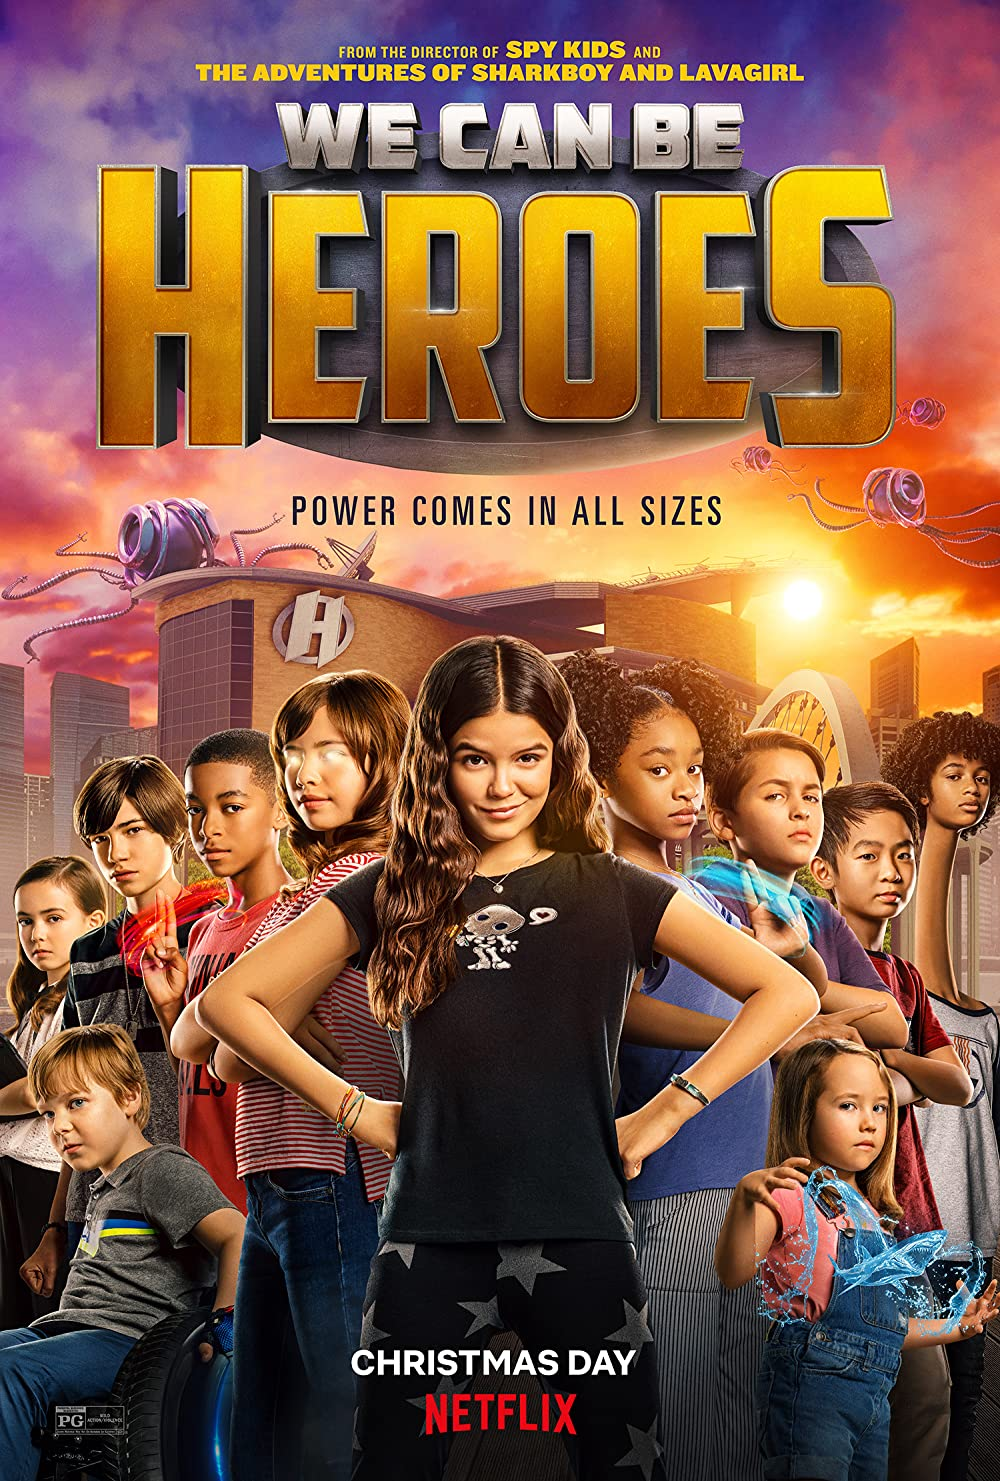 We Can Be Heroes (2020) Hindi ORG Dual Audio 480p NF HDRip ESubs 350MB